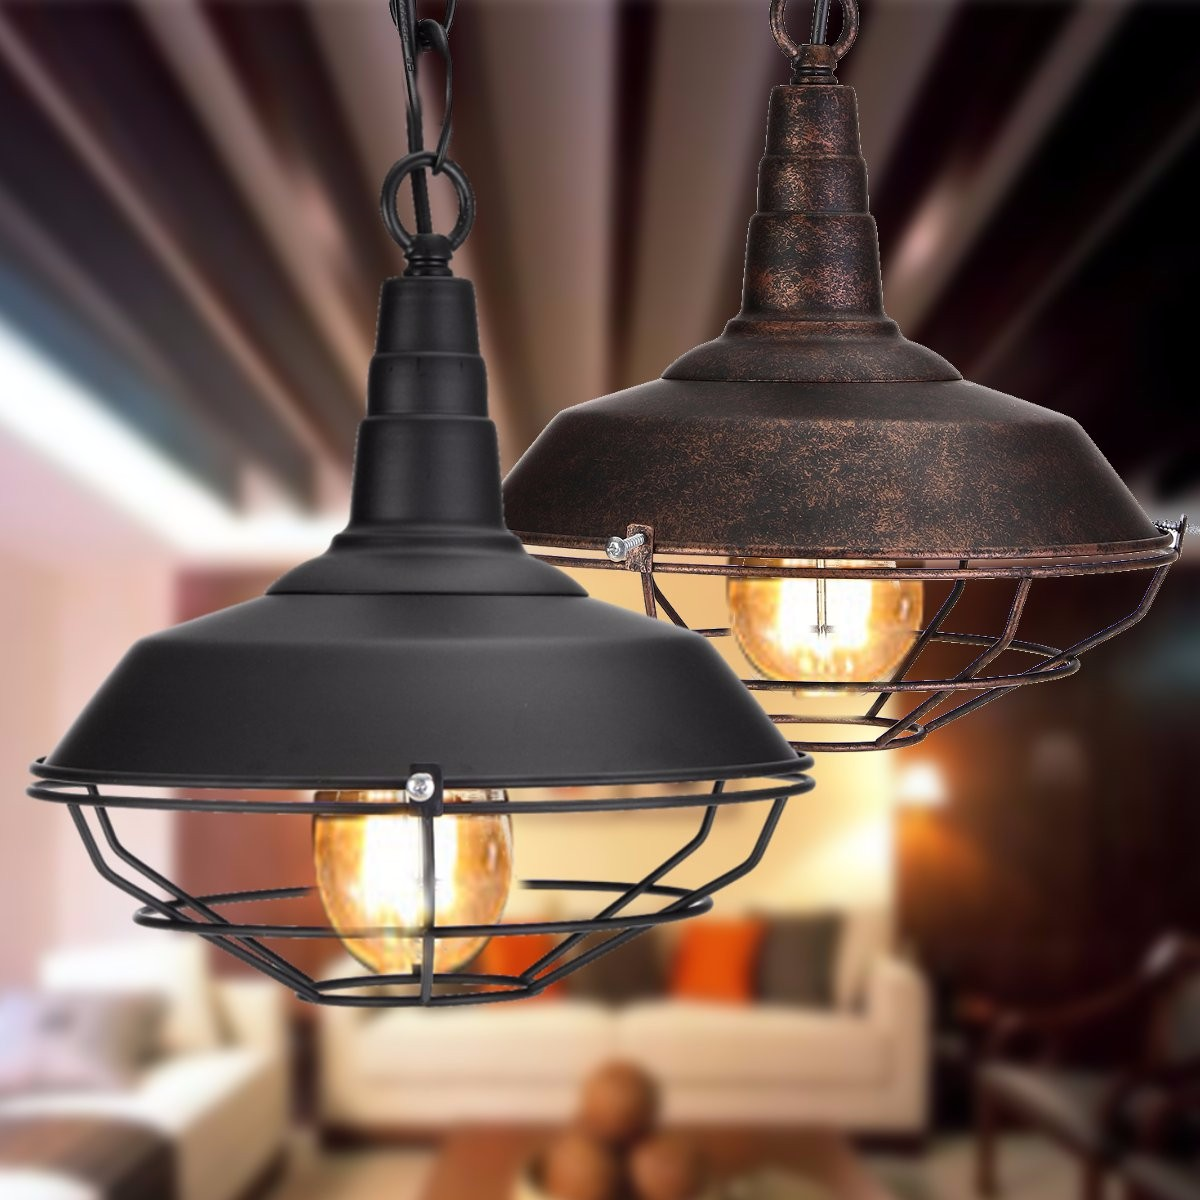 Vintage Industrial Rustic Flush Mount Ceiling Light Metal Lamp Fixture American style village Style Retro Light Lamps|Ceiling Lights| |  - title=